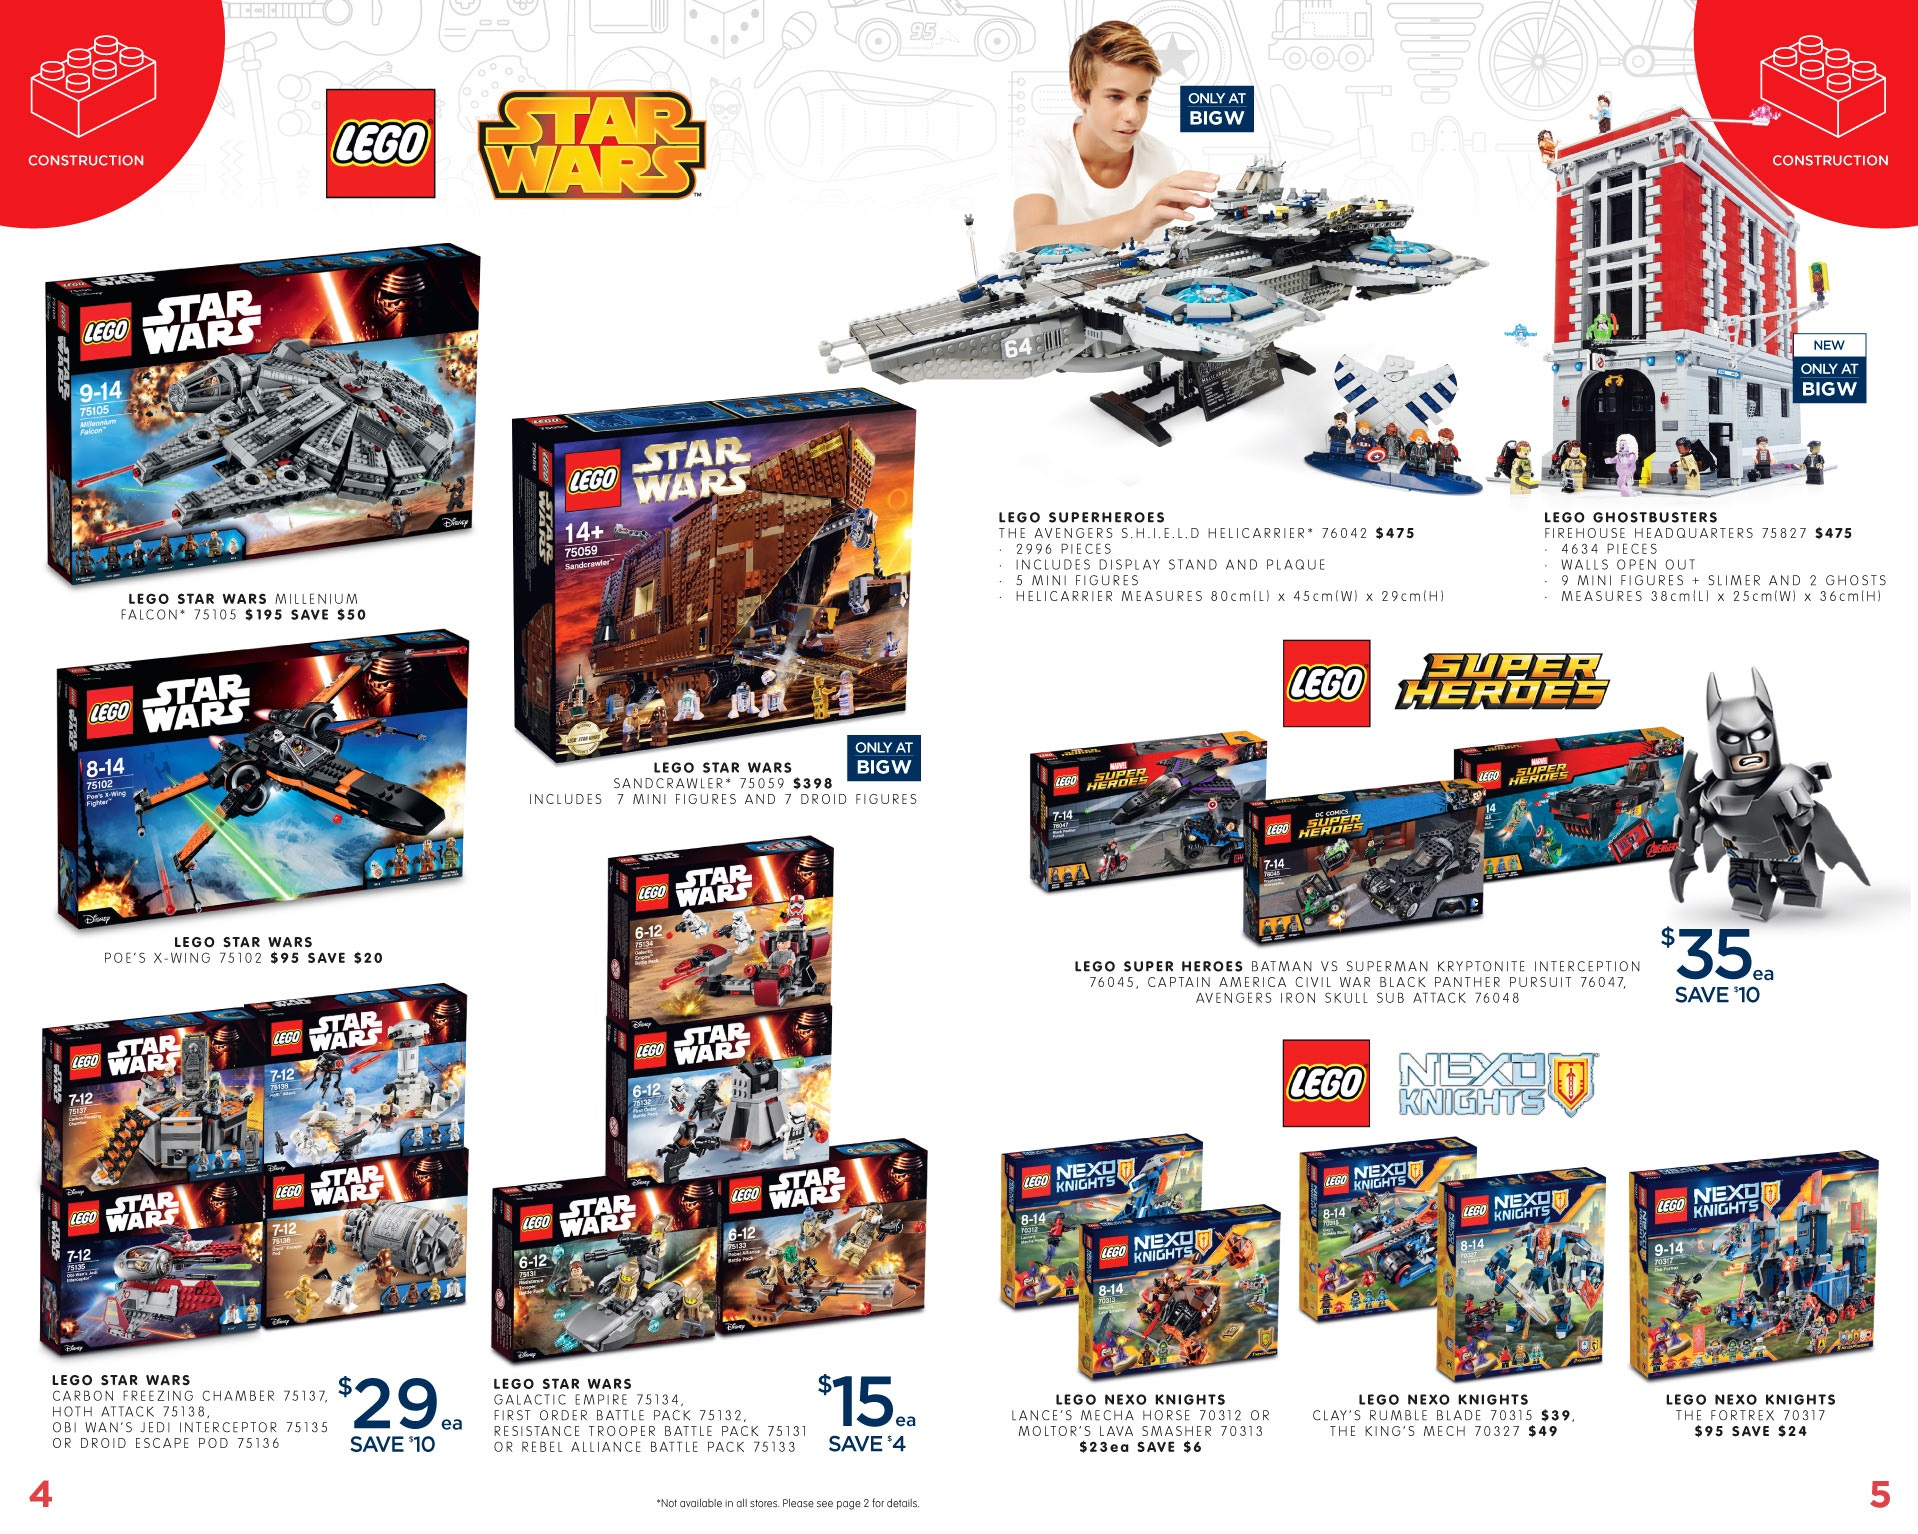 Big W Toys Catalogue Australian Lego Sales June 2016 Mid Year Toy Sale Edition